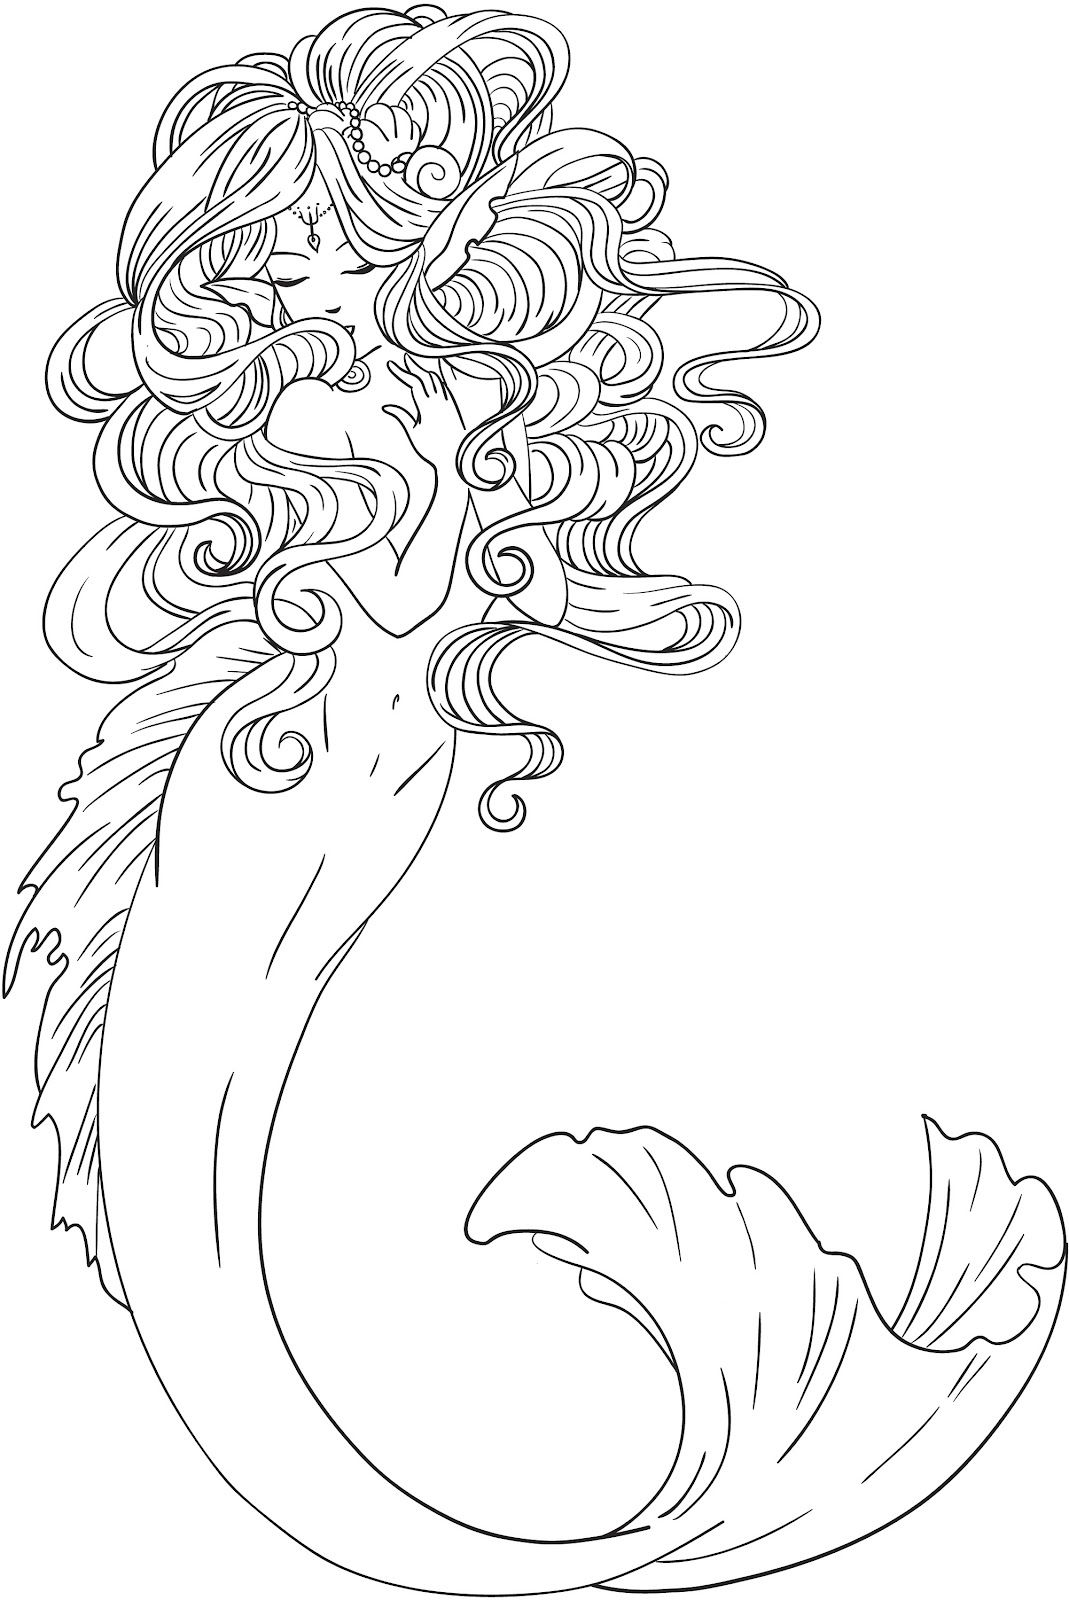 gypsy shyni moonlightings freebie mermaid colouring page - Coloring Pages Mermaids Realistic